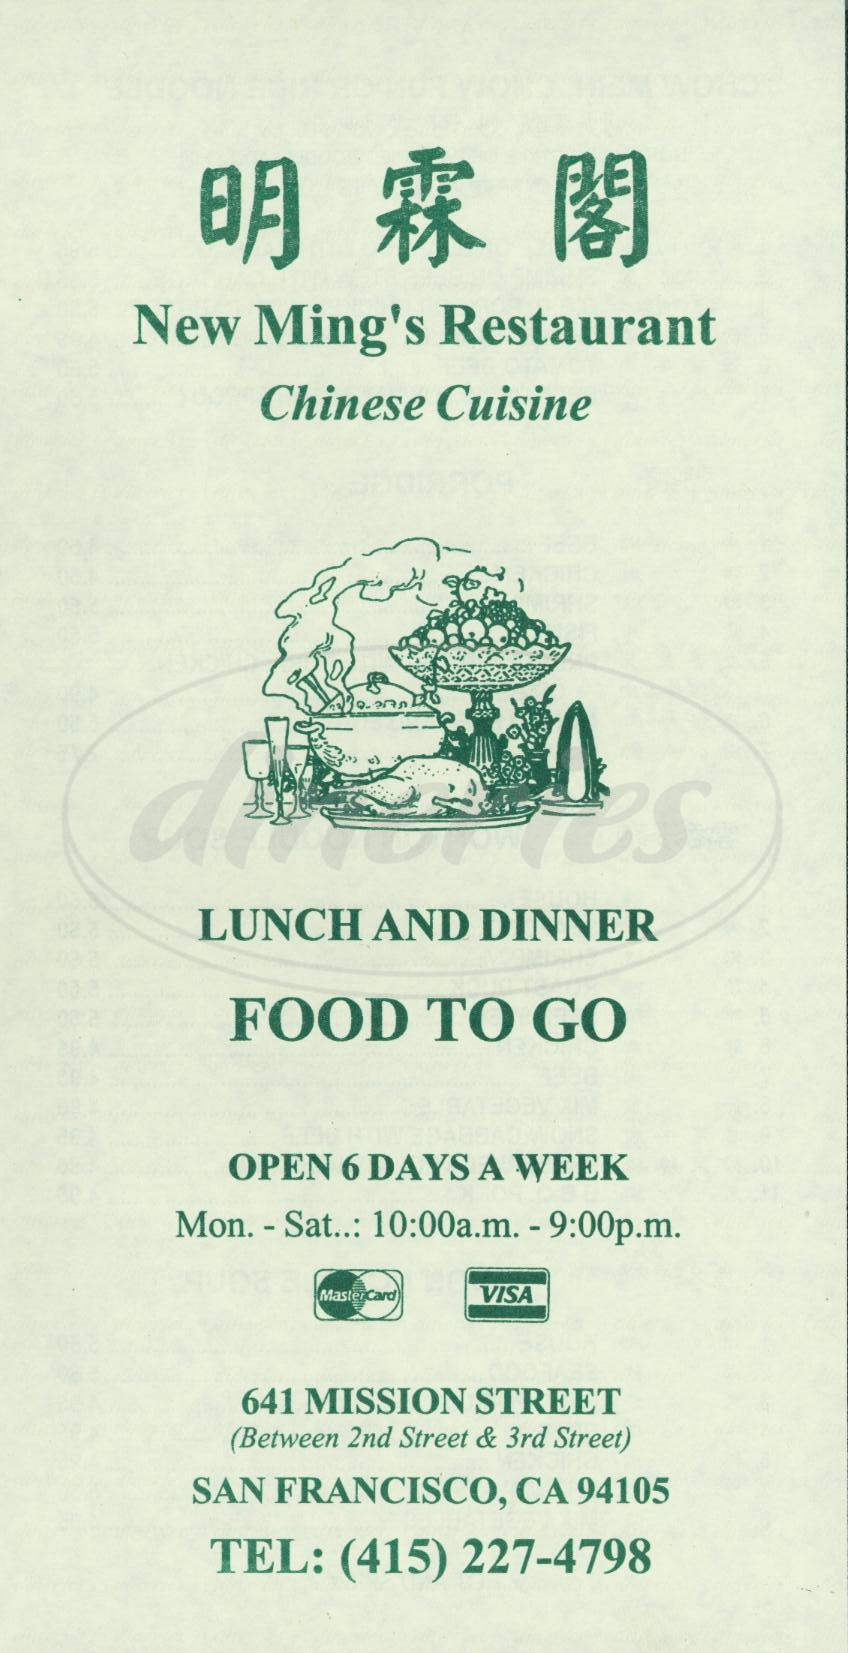 menu for New Ming's Restaurant